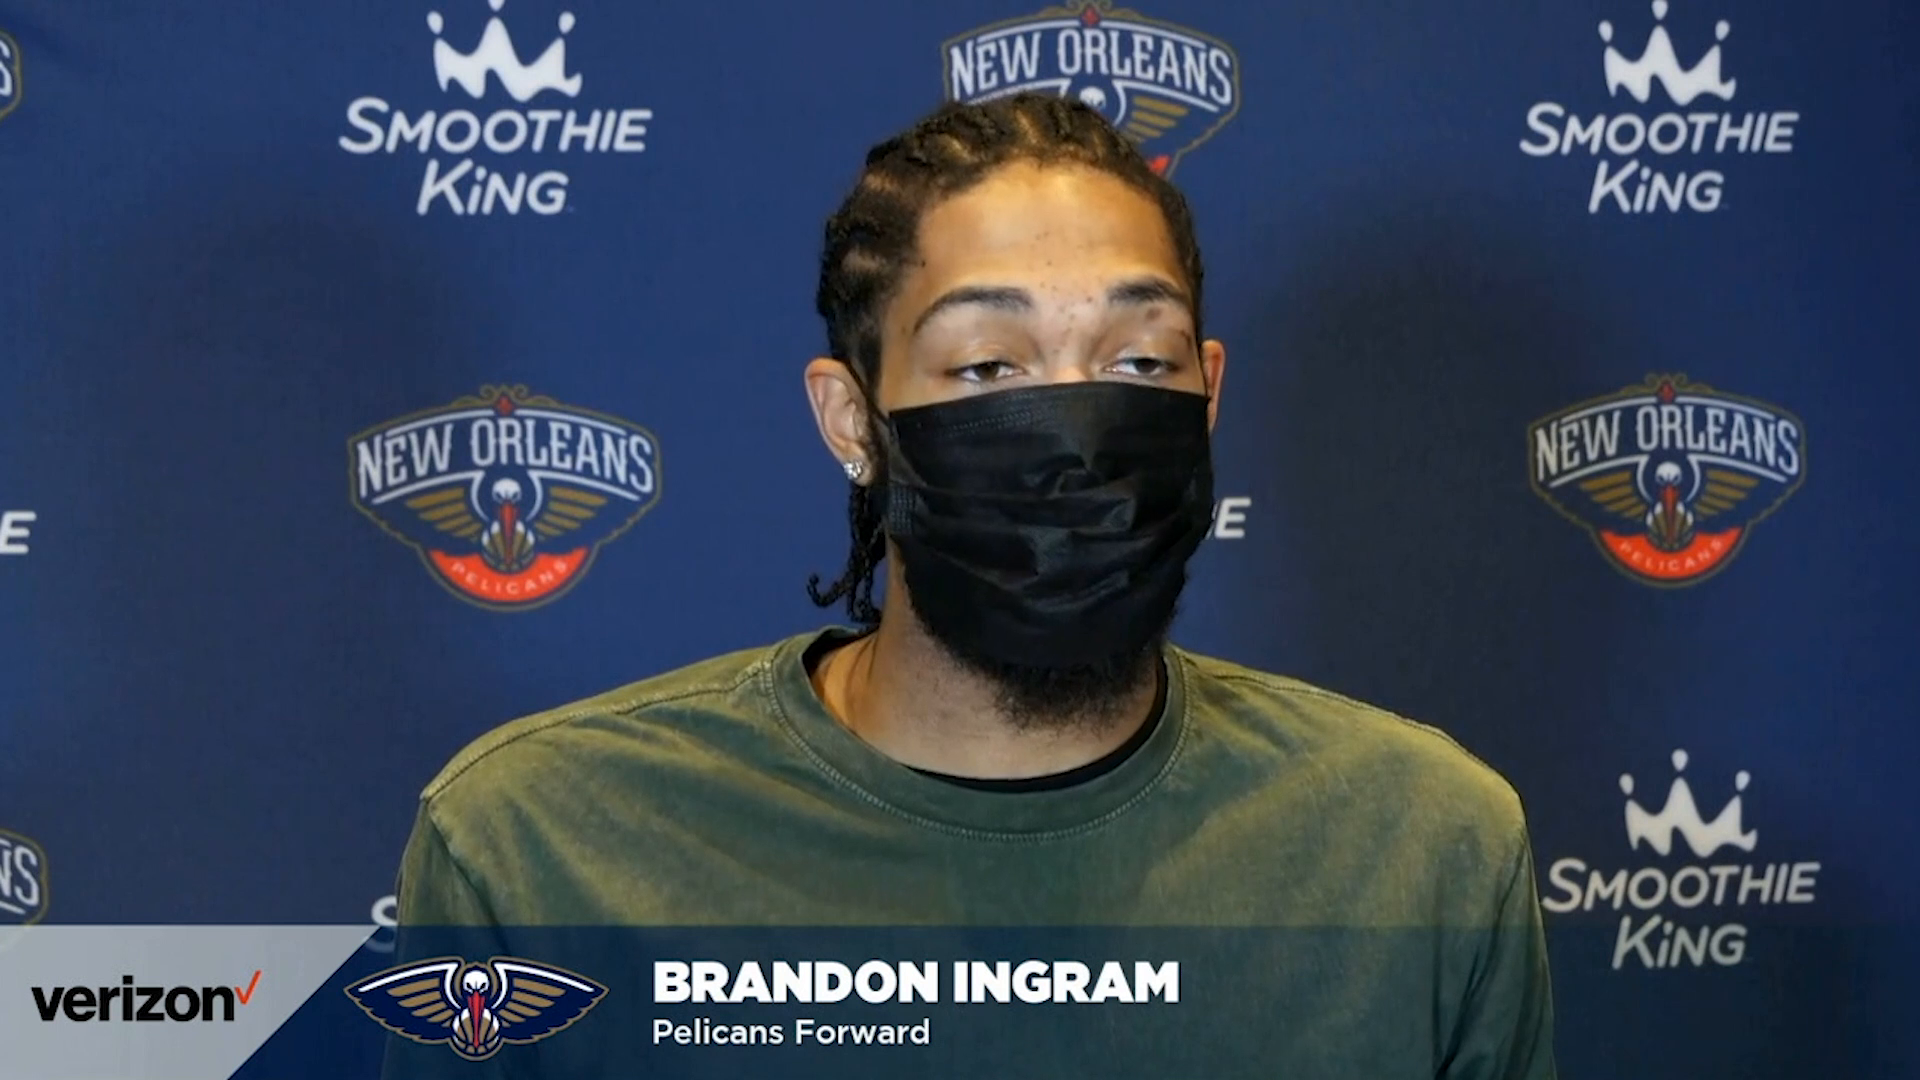 Pelicans-Jazz Postgame: Brandon Ingram 3-1-2021